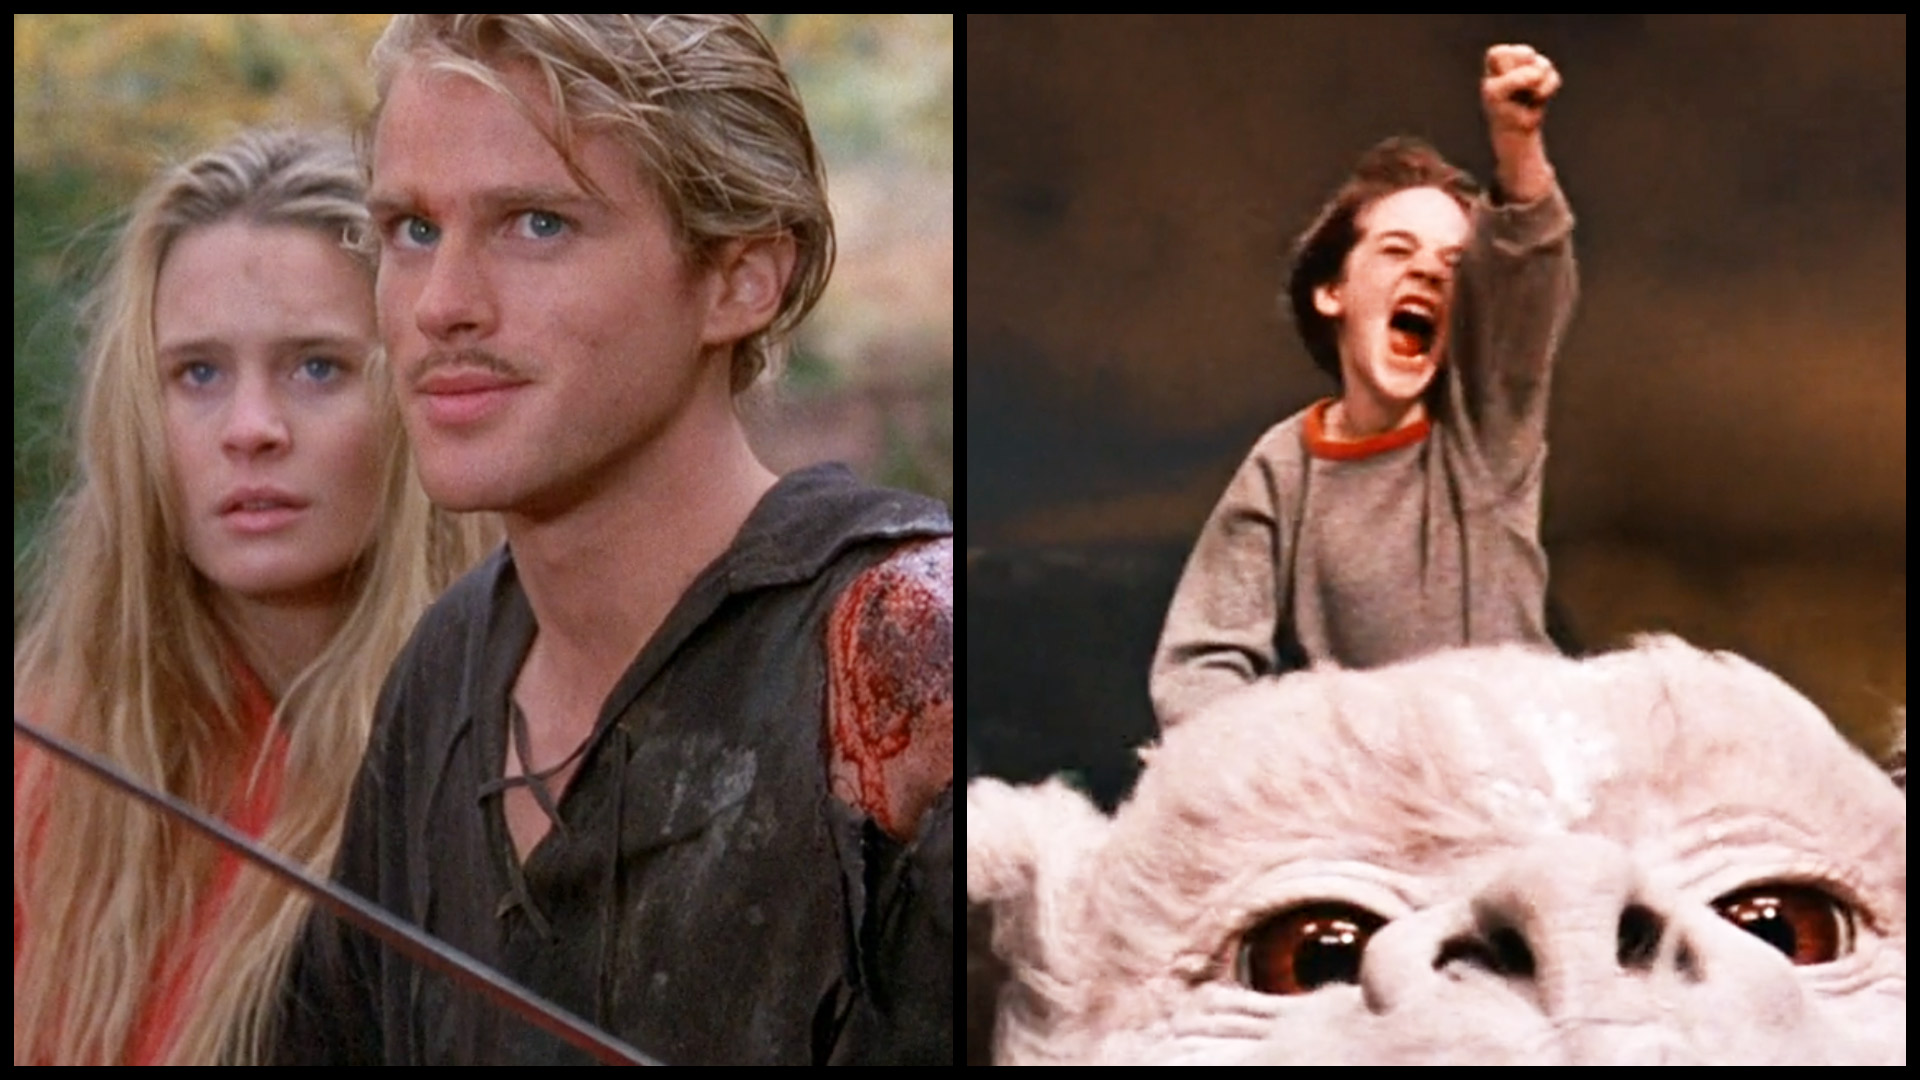 Movie Time! Fantasy Blending: The NeverEnding Story (1984) and The Princess Bride (1987)